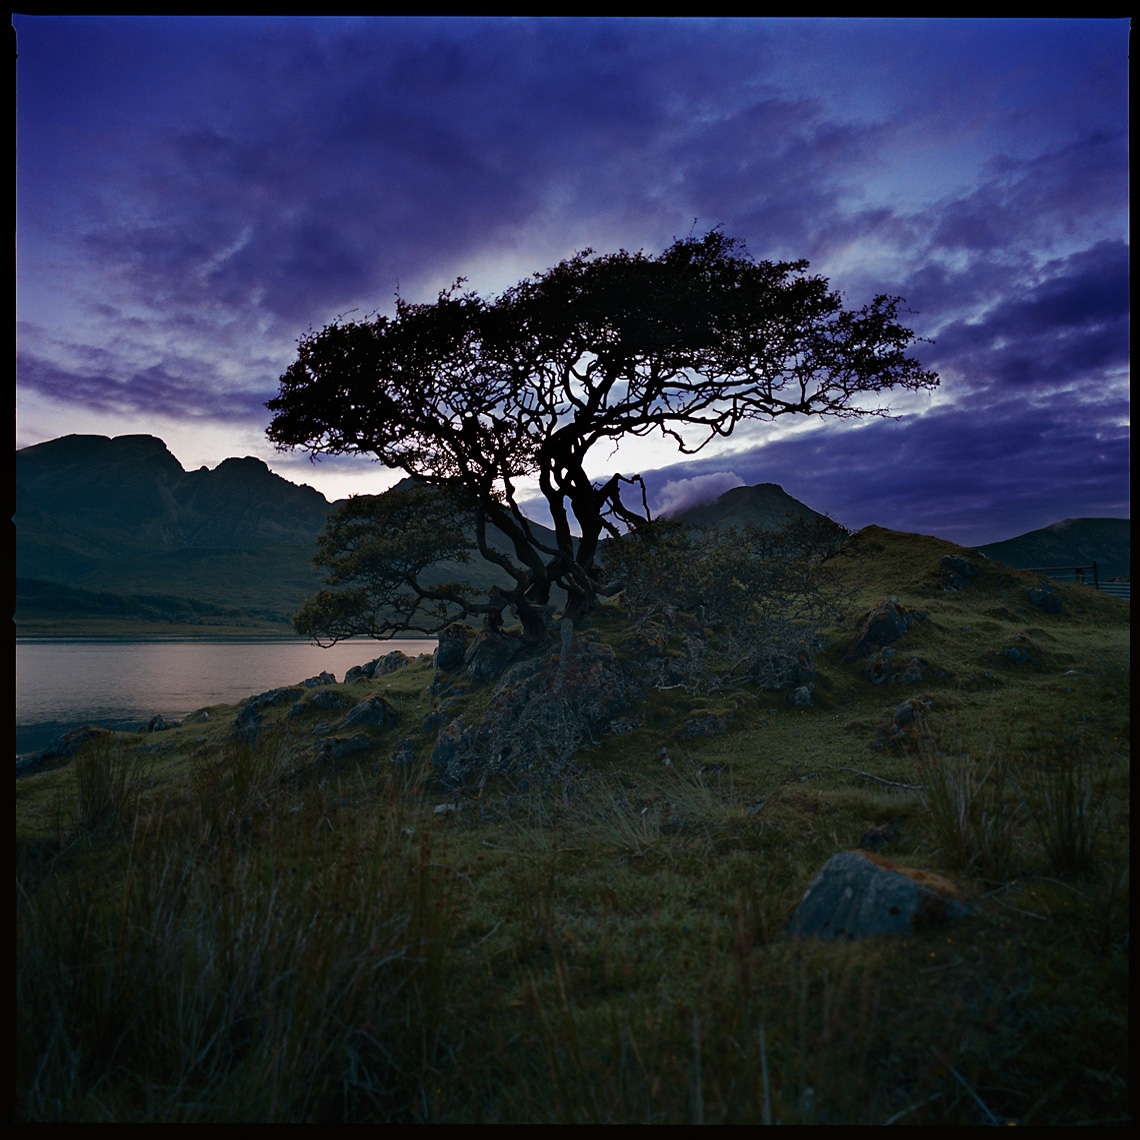 Tree and Cuillin Hills Isle of Skye Scotland Landscape Photograph